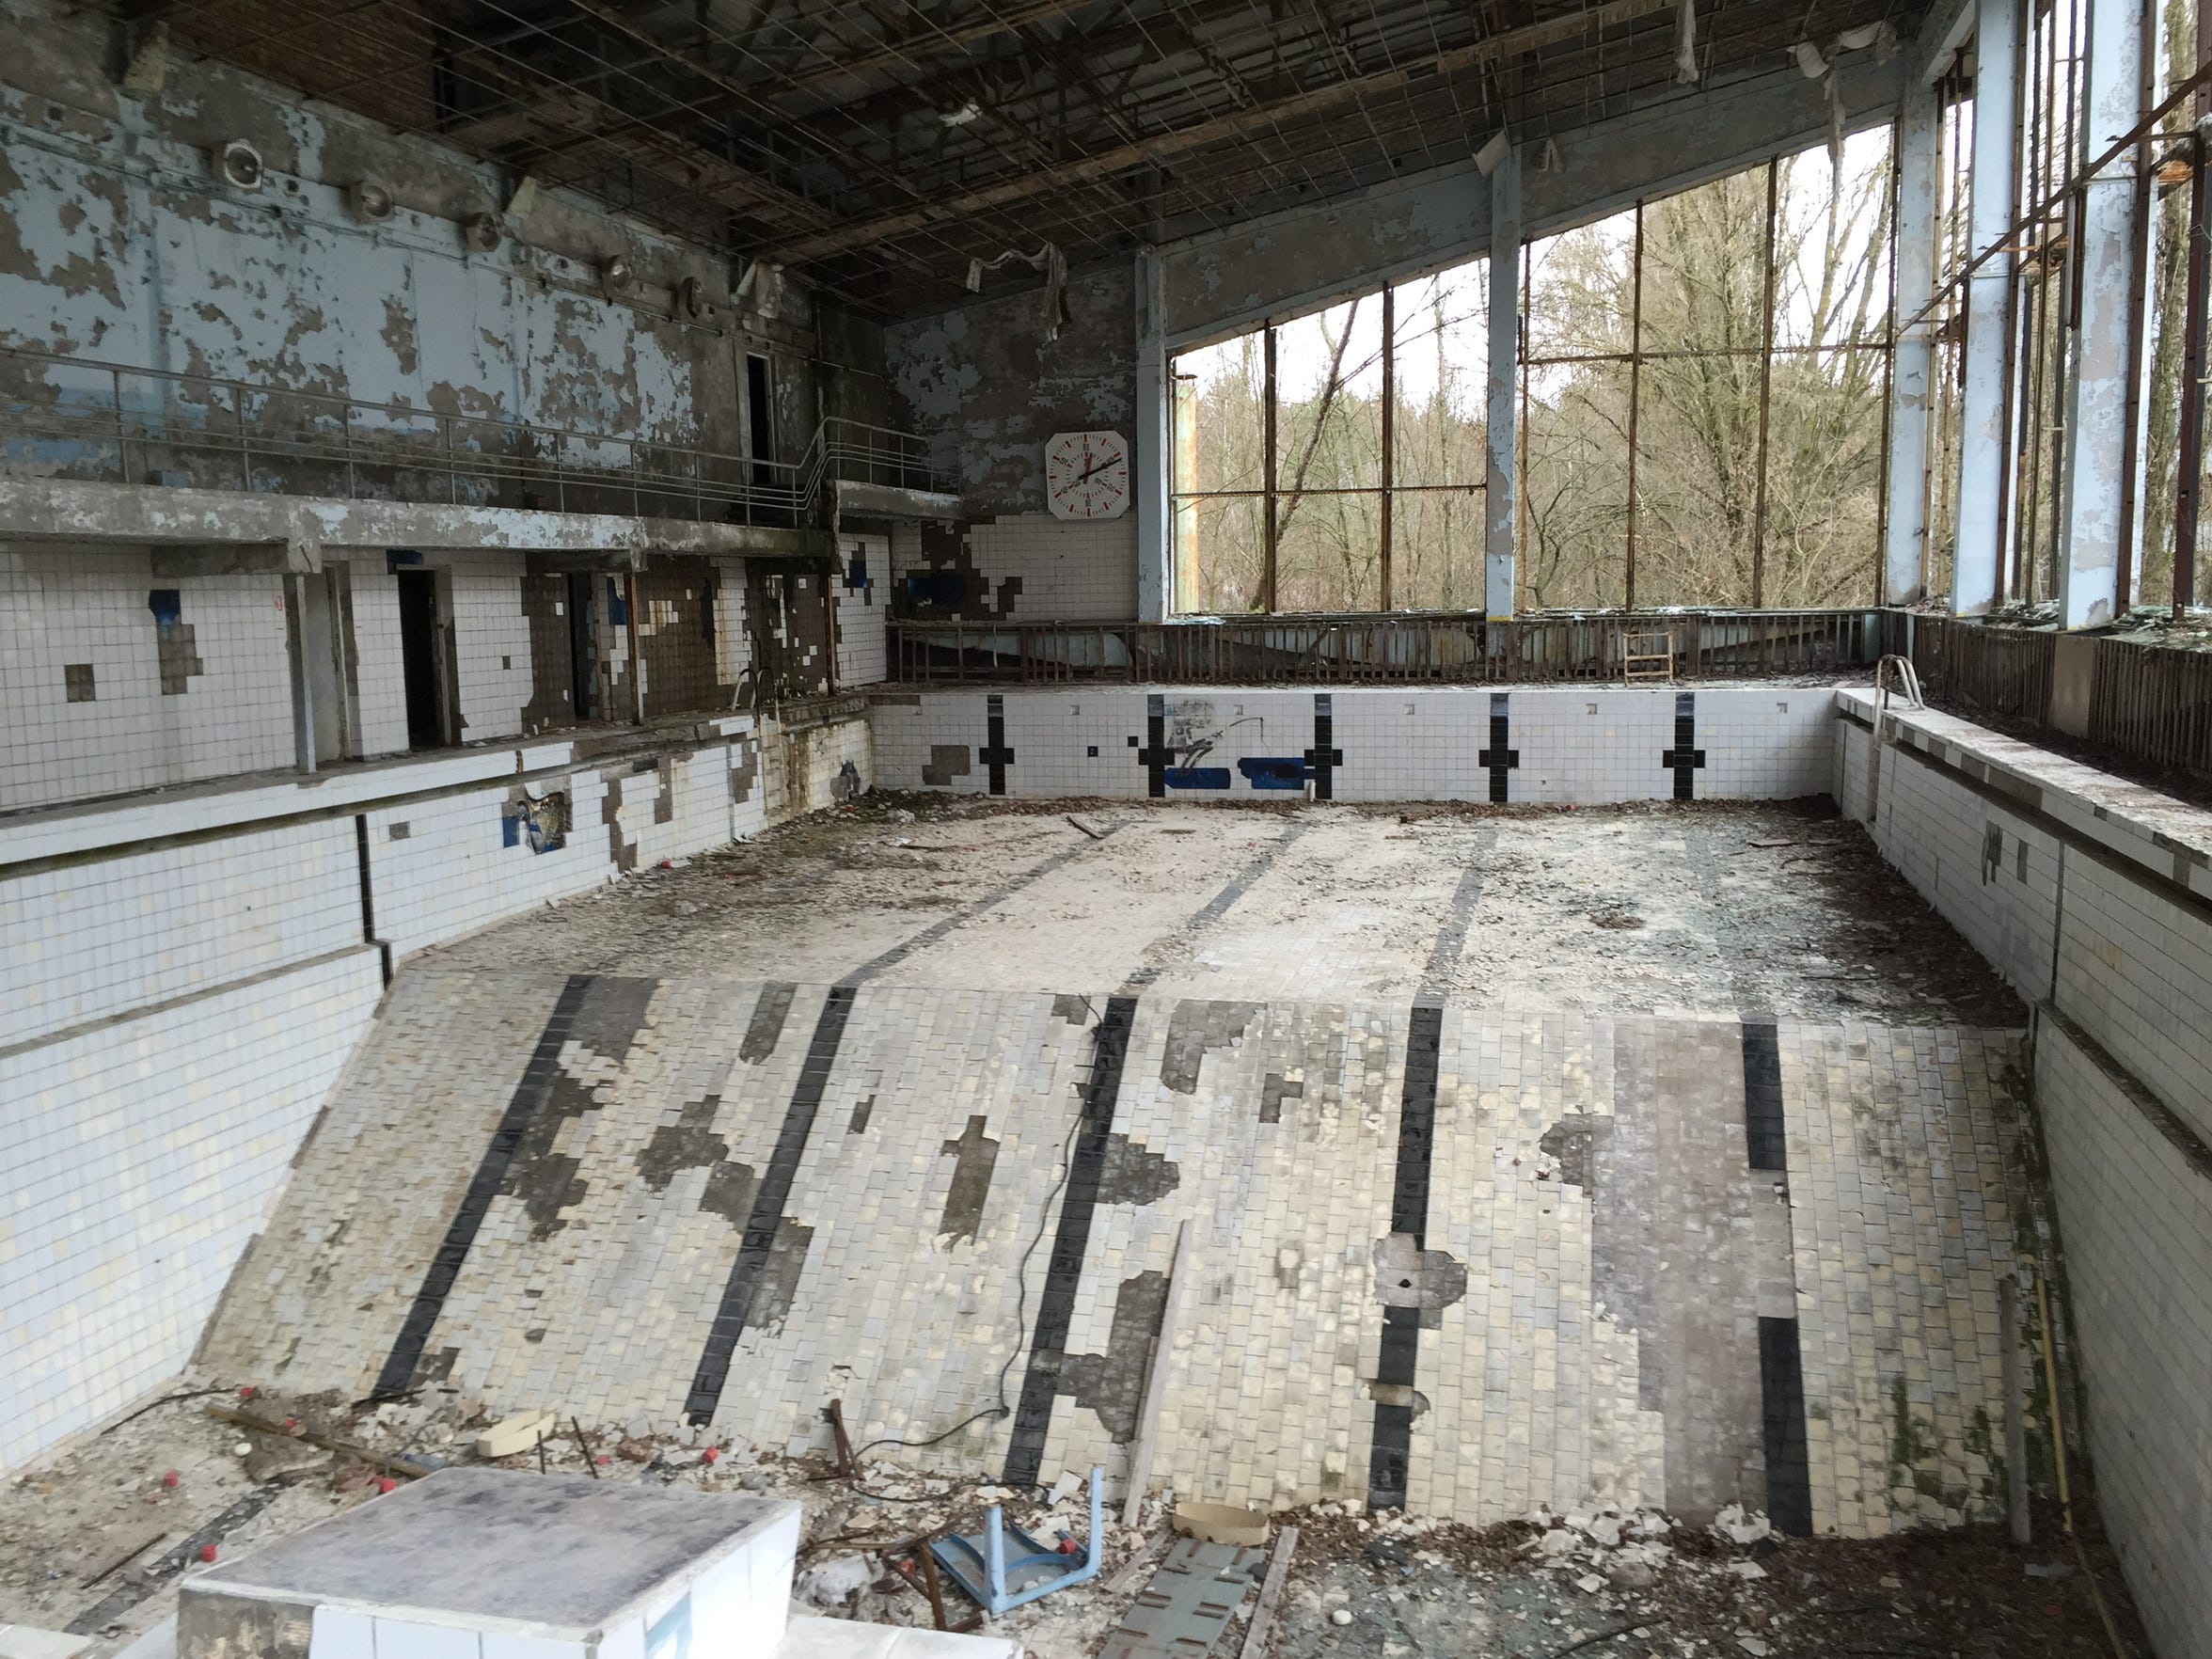 A swimming pool in Pripyat, Ukraine. More than a decade after the accident it was being used by workers involved with the Chernobyl cleanup operation despite the presence of radiation.